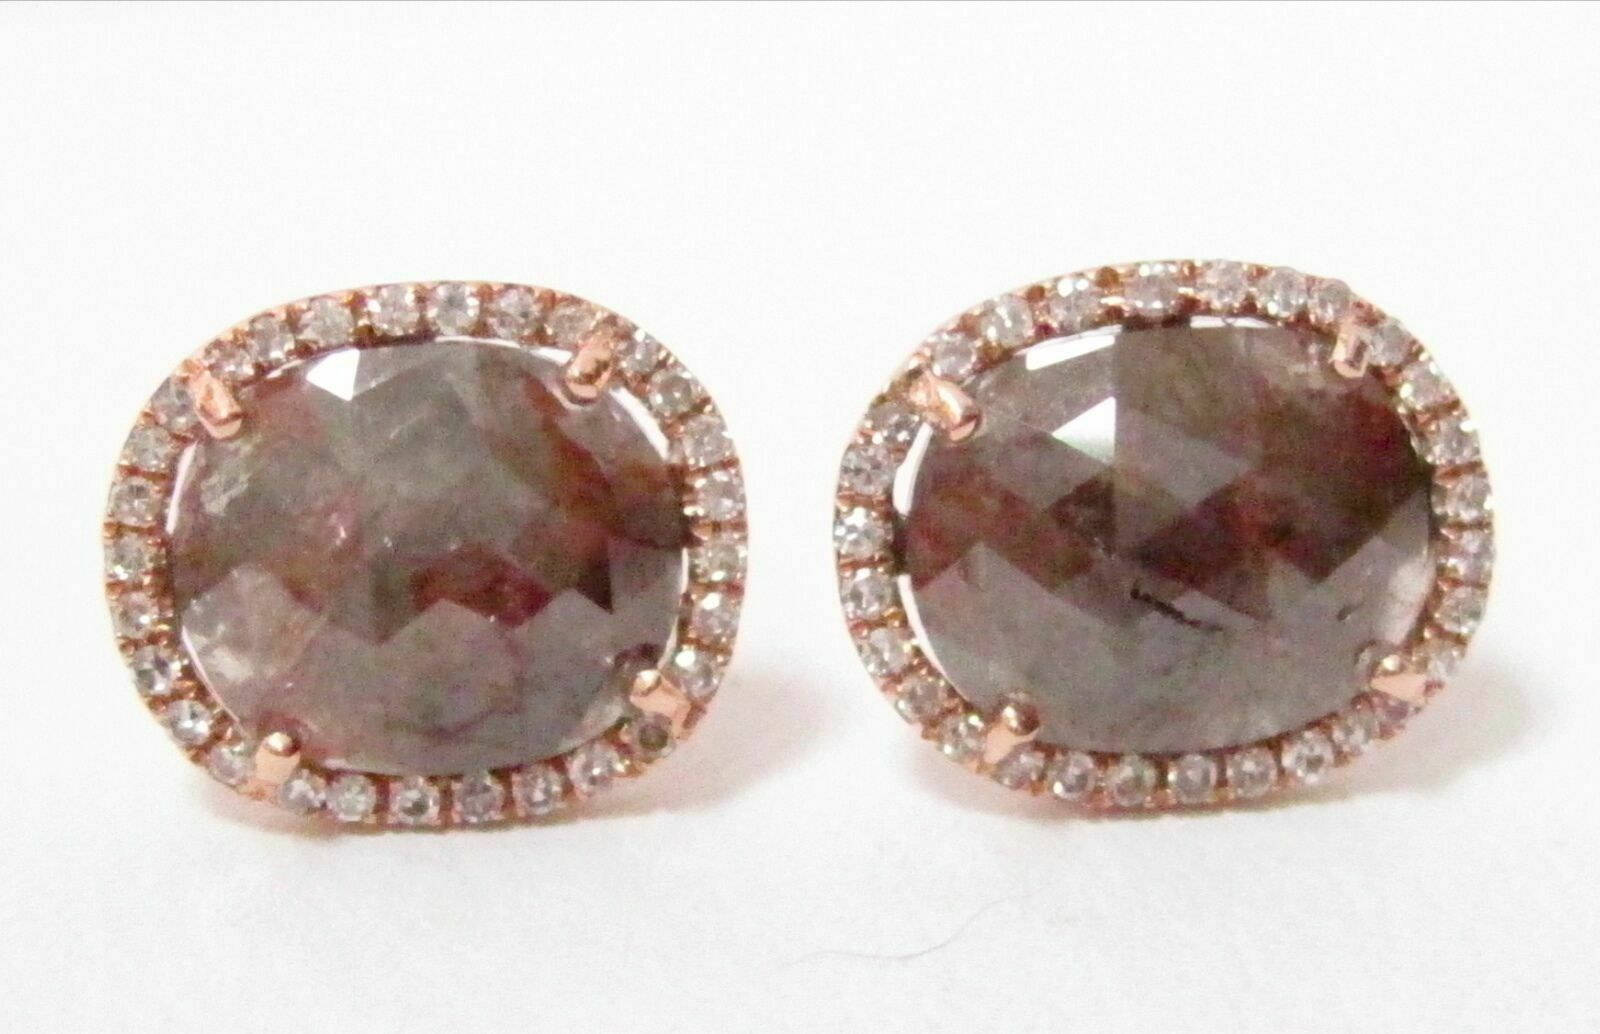 2.07 TCW Natural Oval Cut Fancy Brown Raw/Rustic Diamonds Earrings 14k Rose Gold